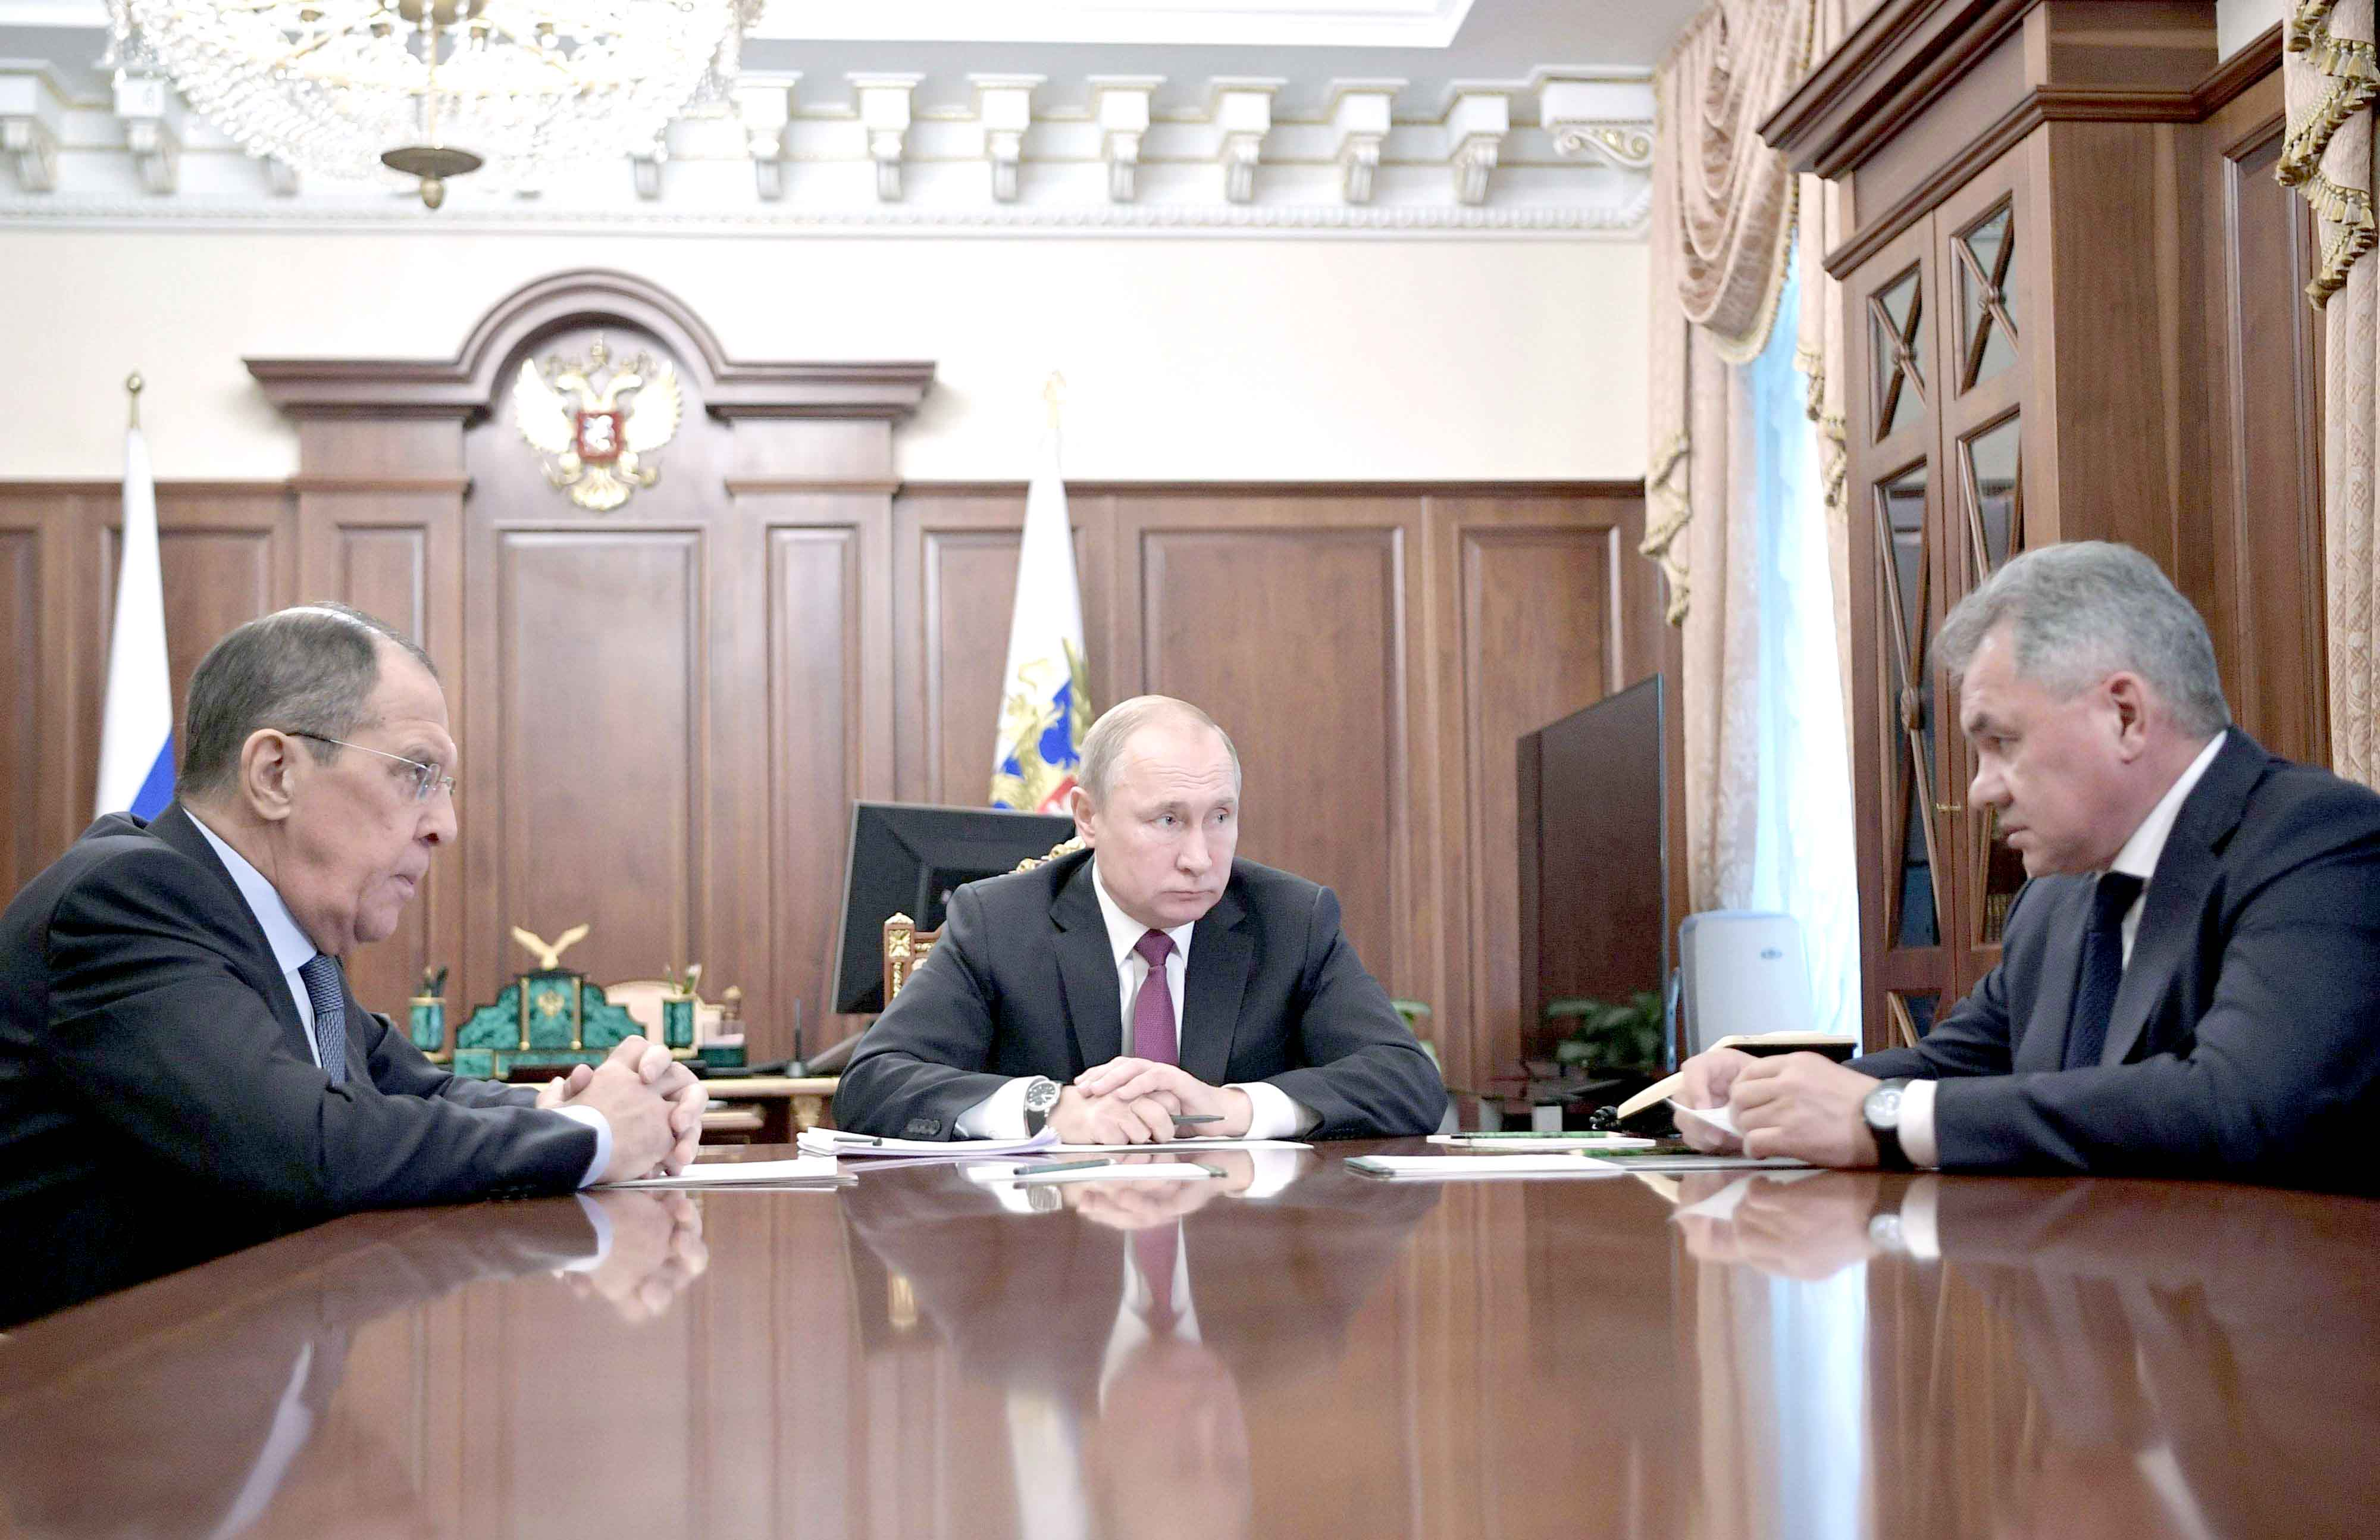 Increasingly assertive. Russian President Vladimir Putin (C) attends a meeting with Russia's Foreign Minister Sergei Lavrov (L) and Defence Minister Sergei Shoigu in Moscow, last February.  (AFP)